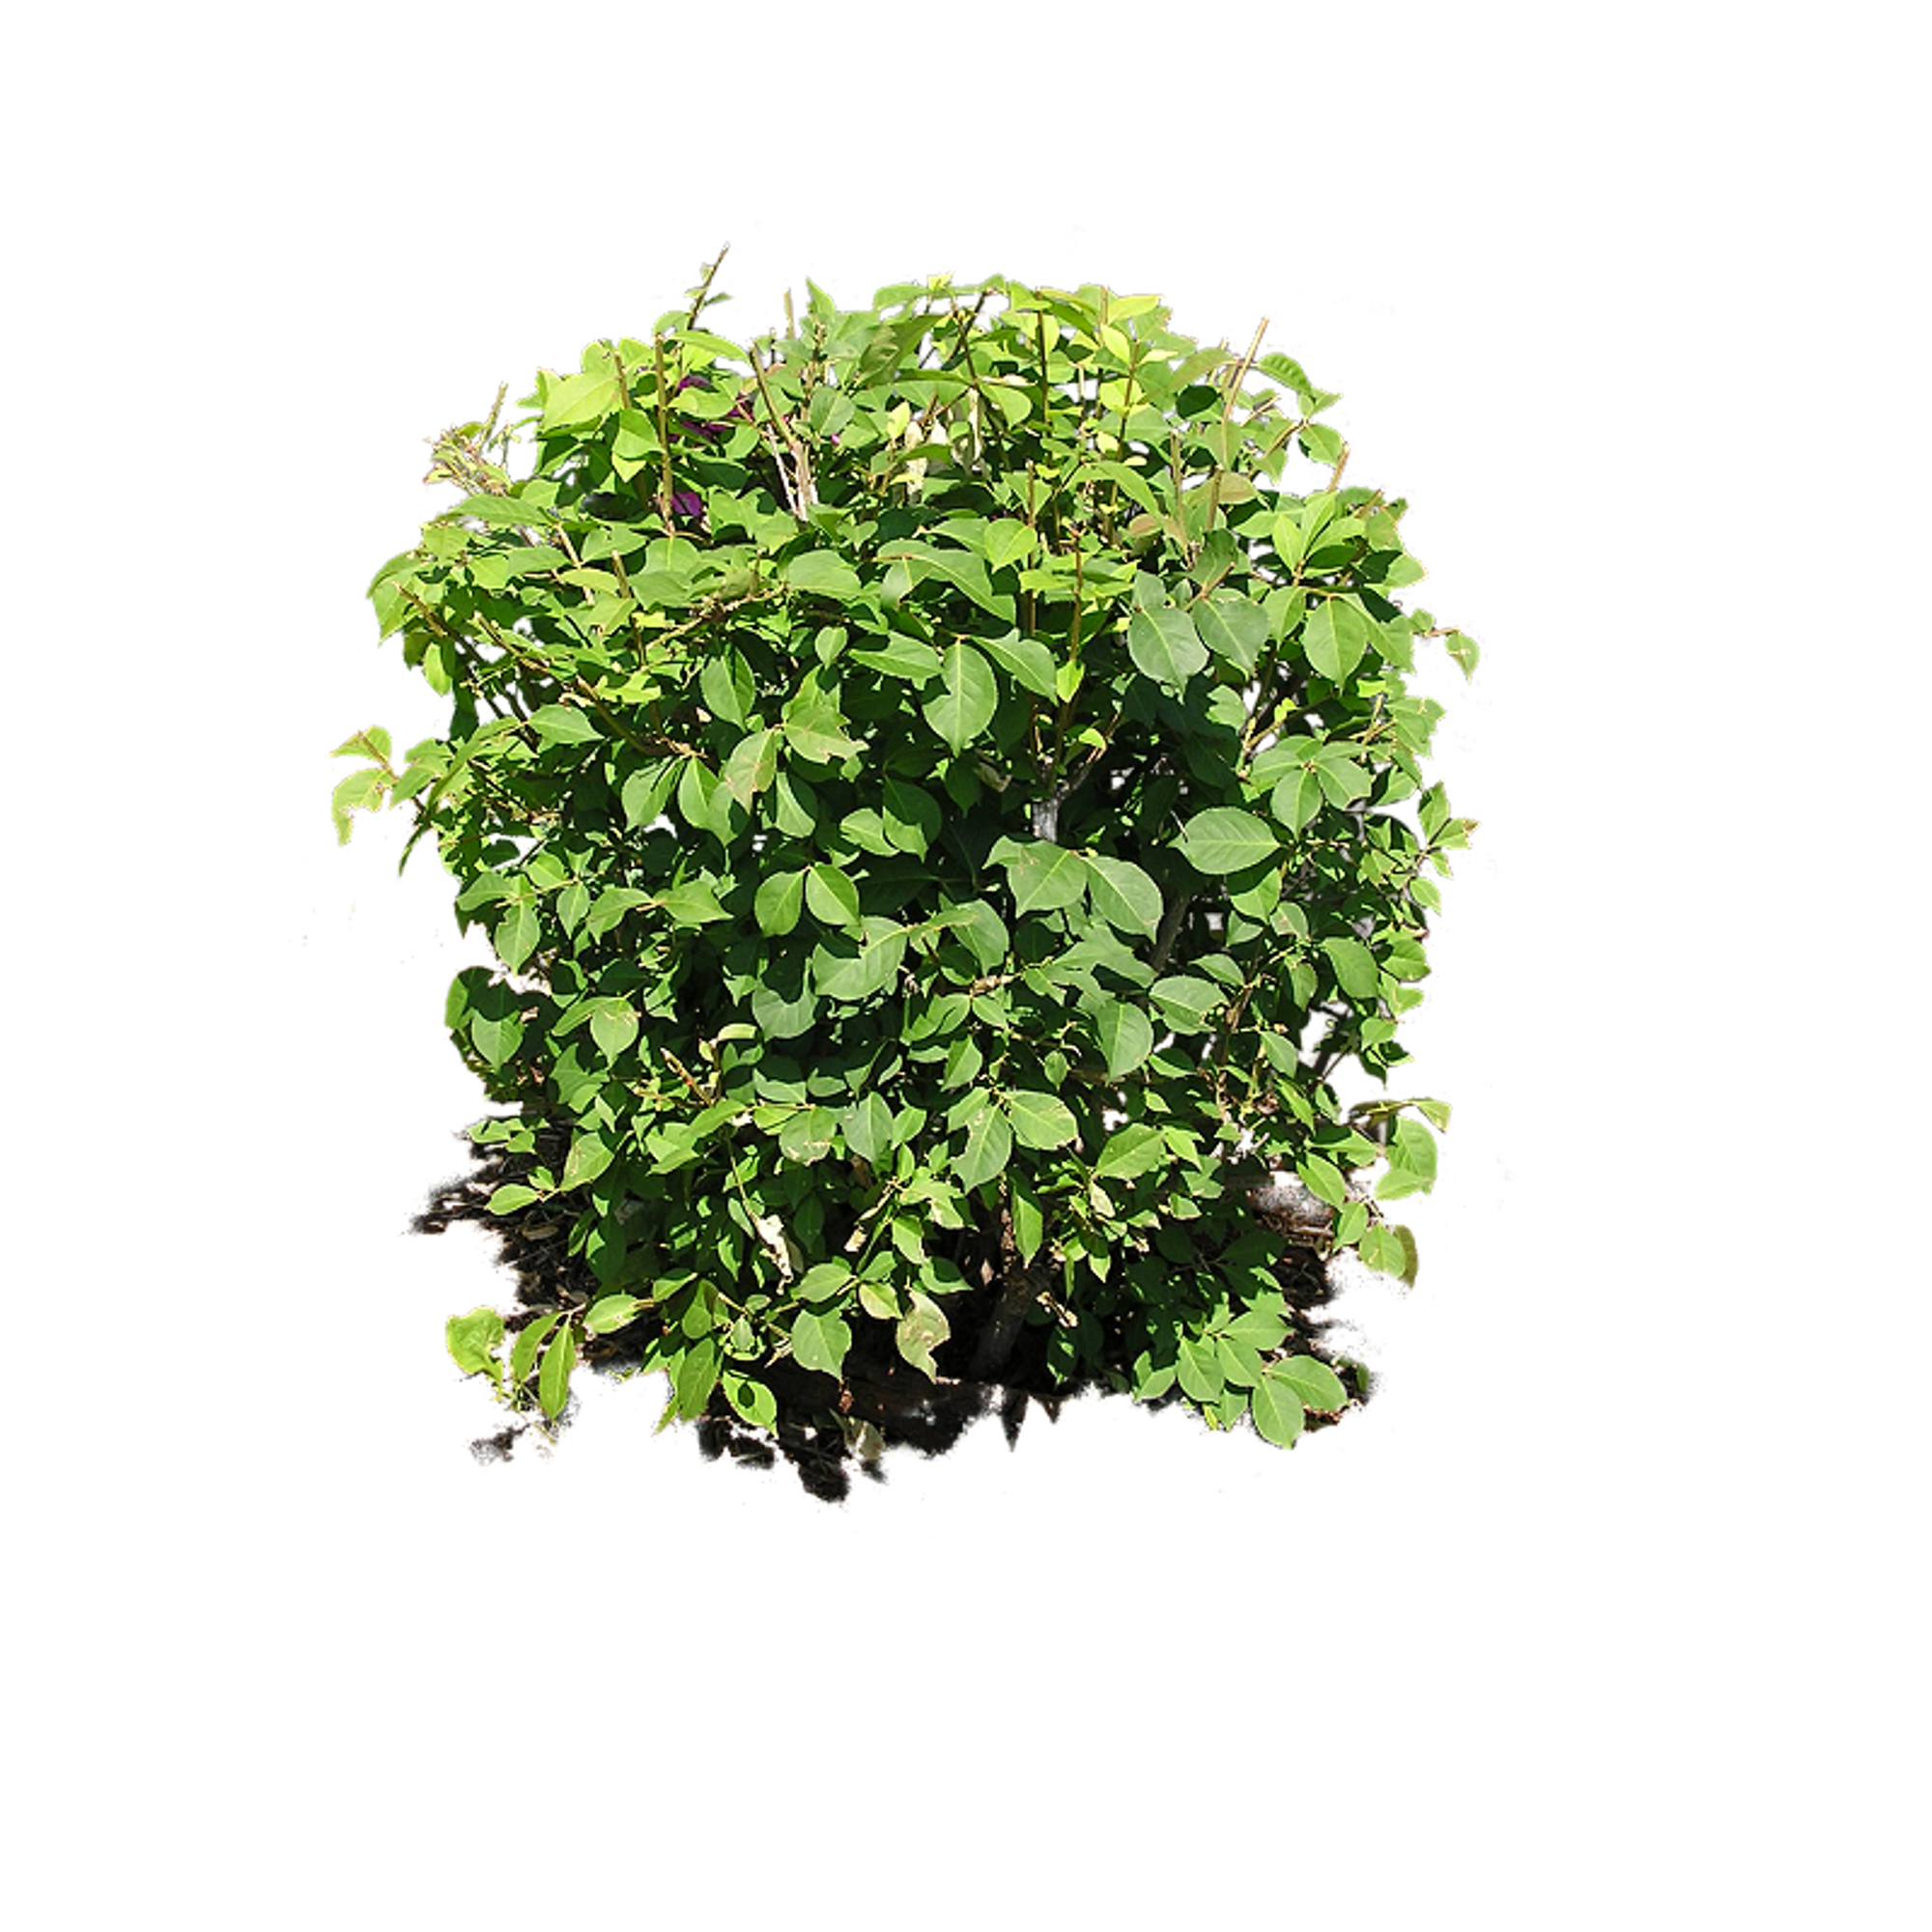 Bushes images free download. Hedge png graphic